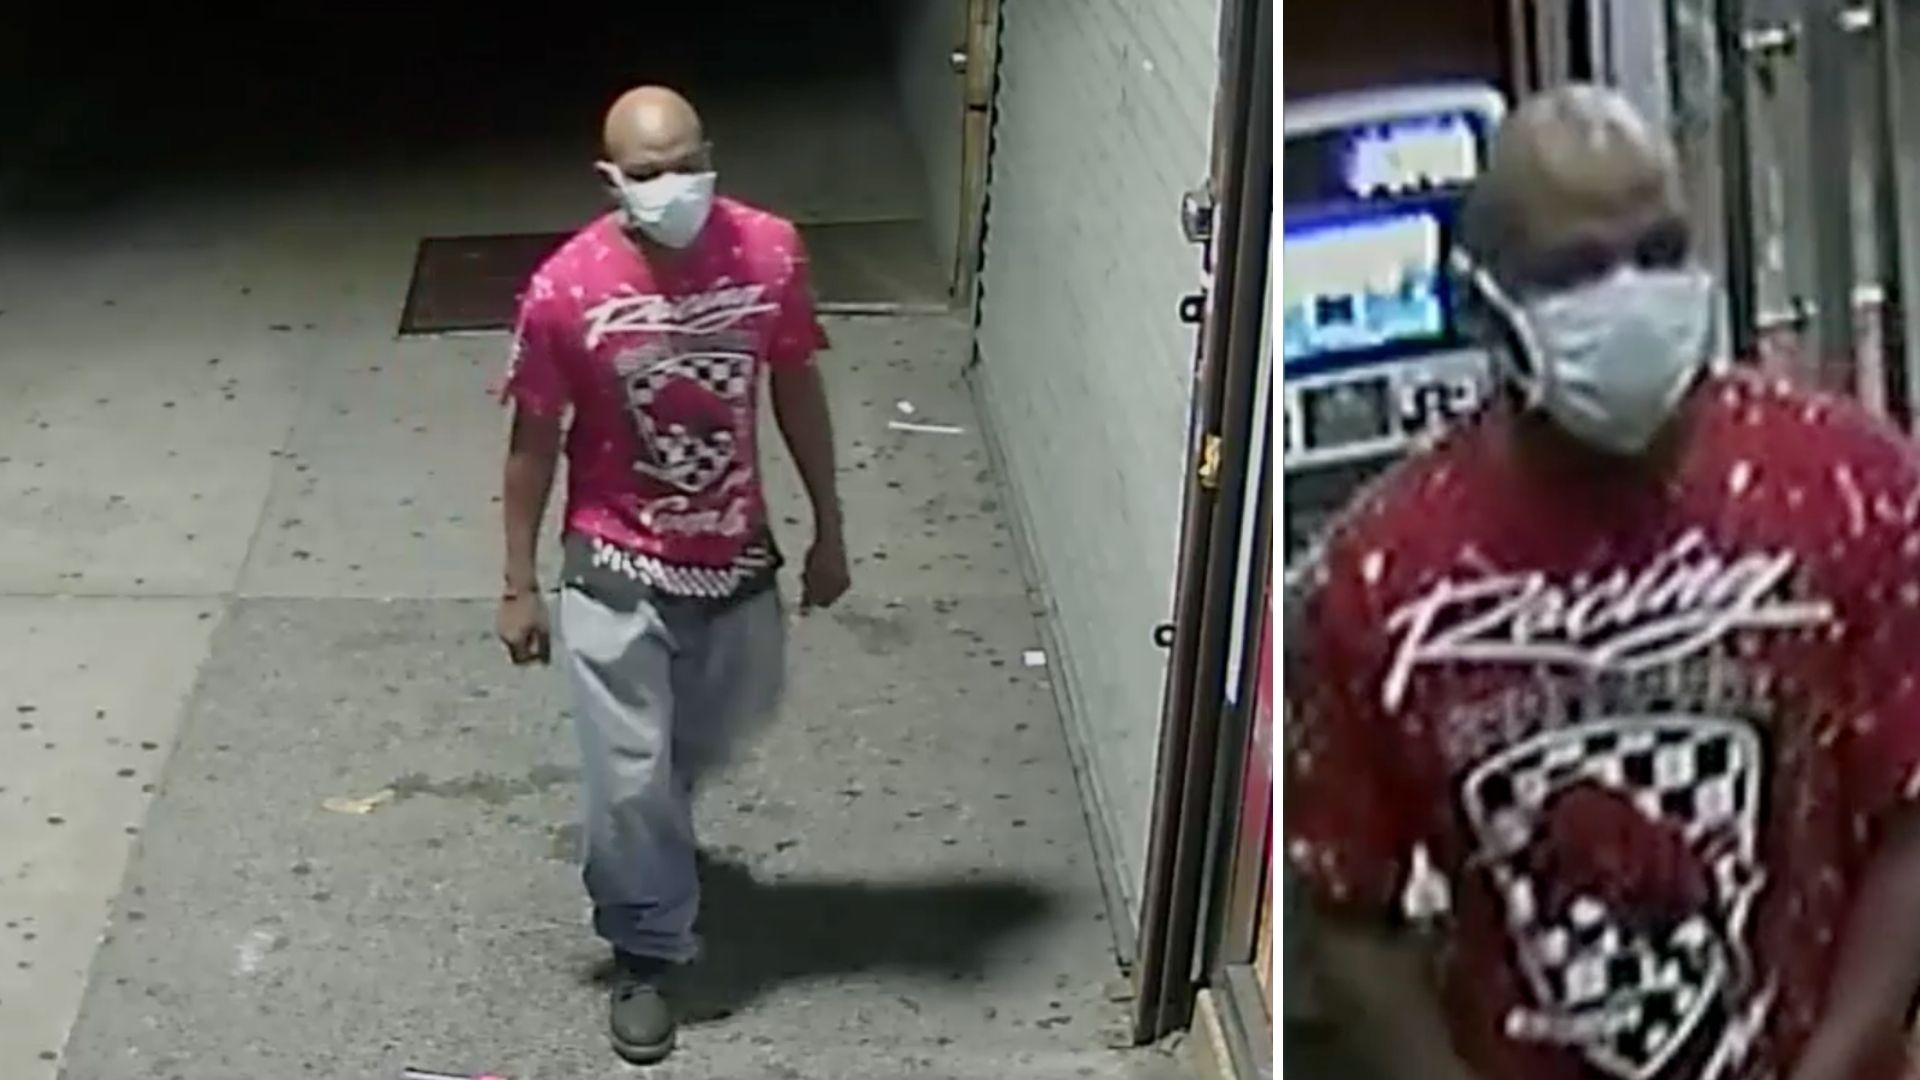 Woman sexually assaulted, robbed on Harlem street